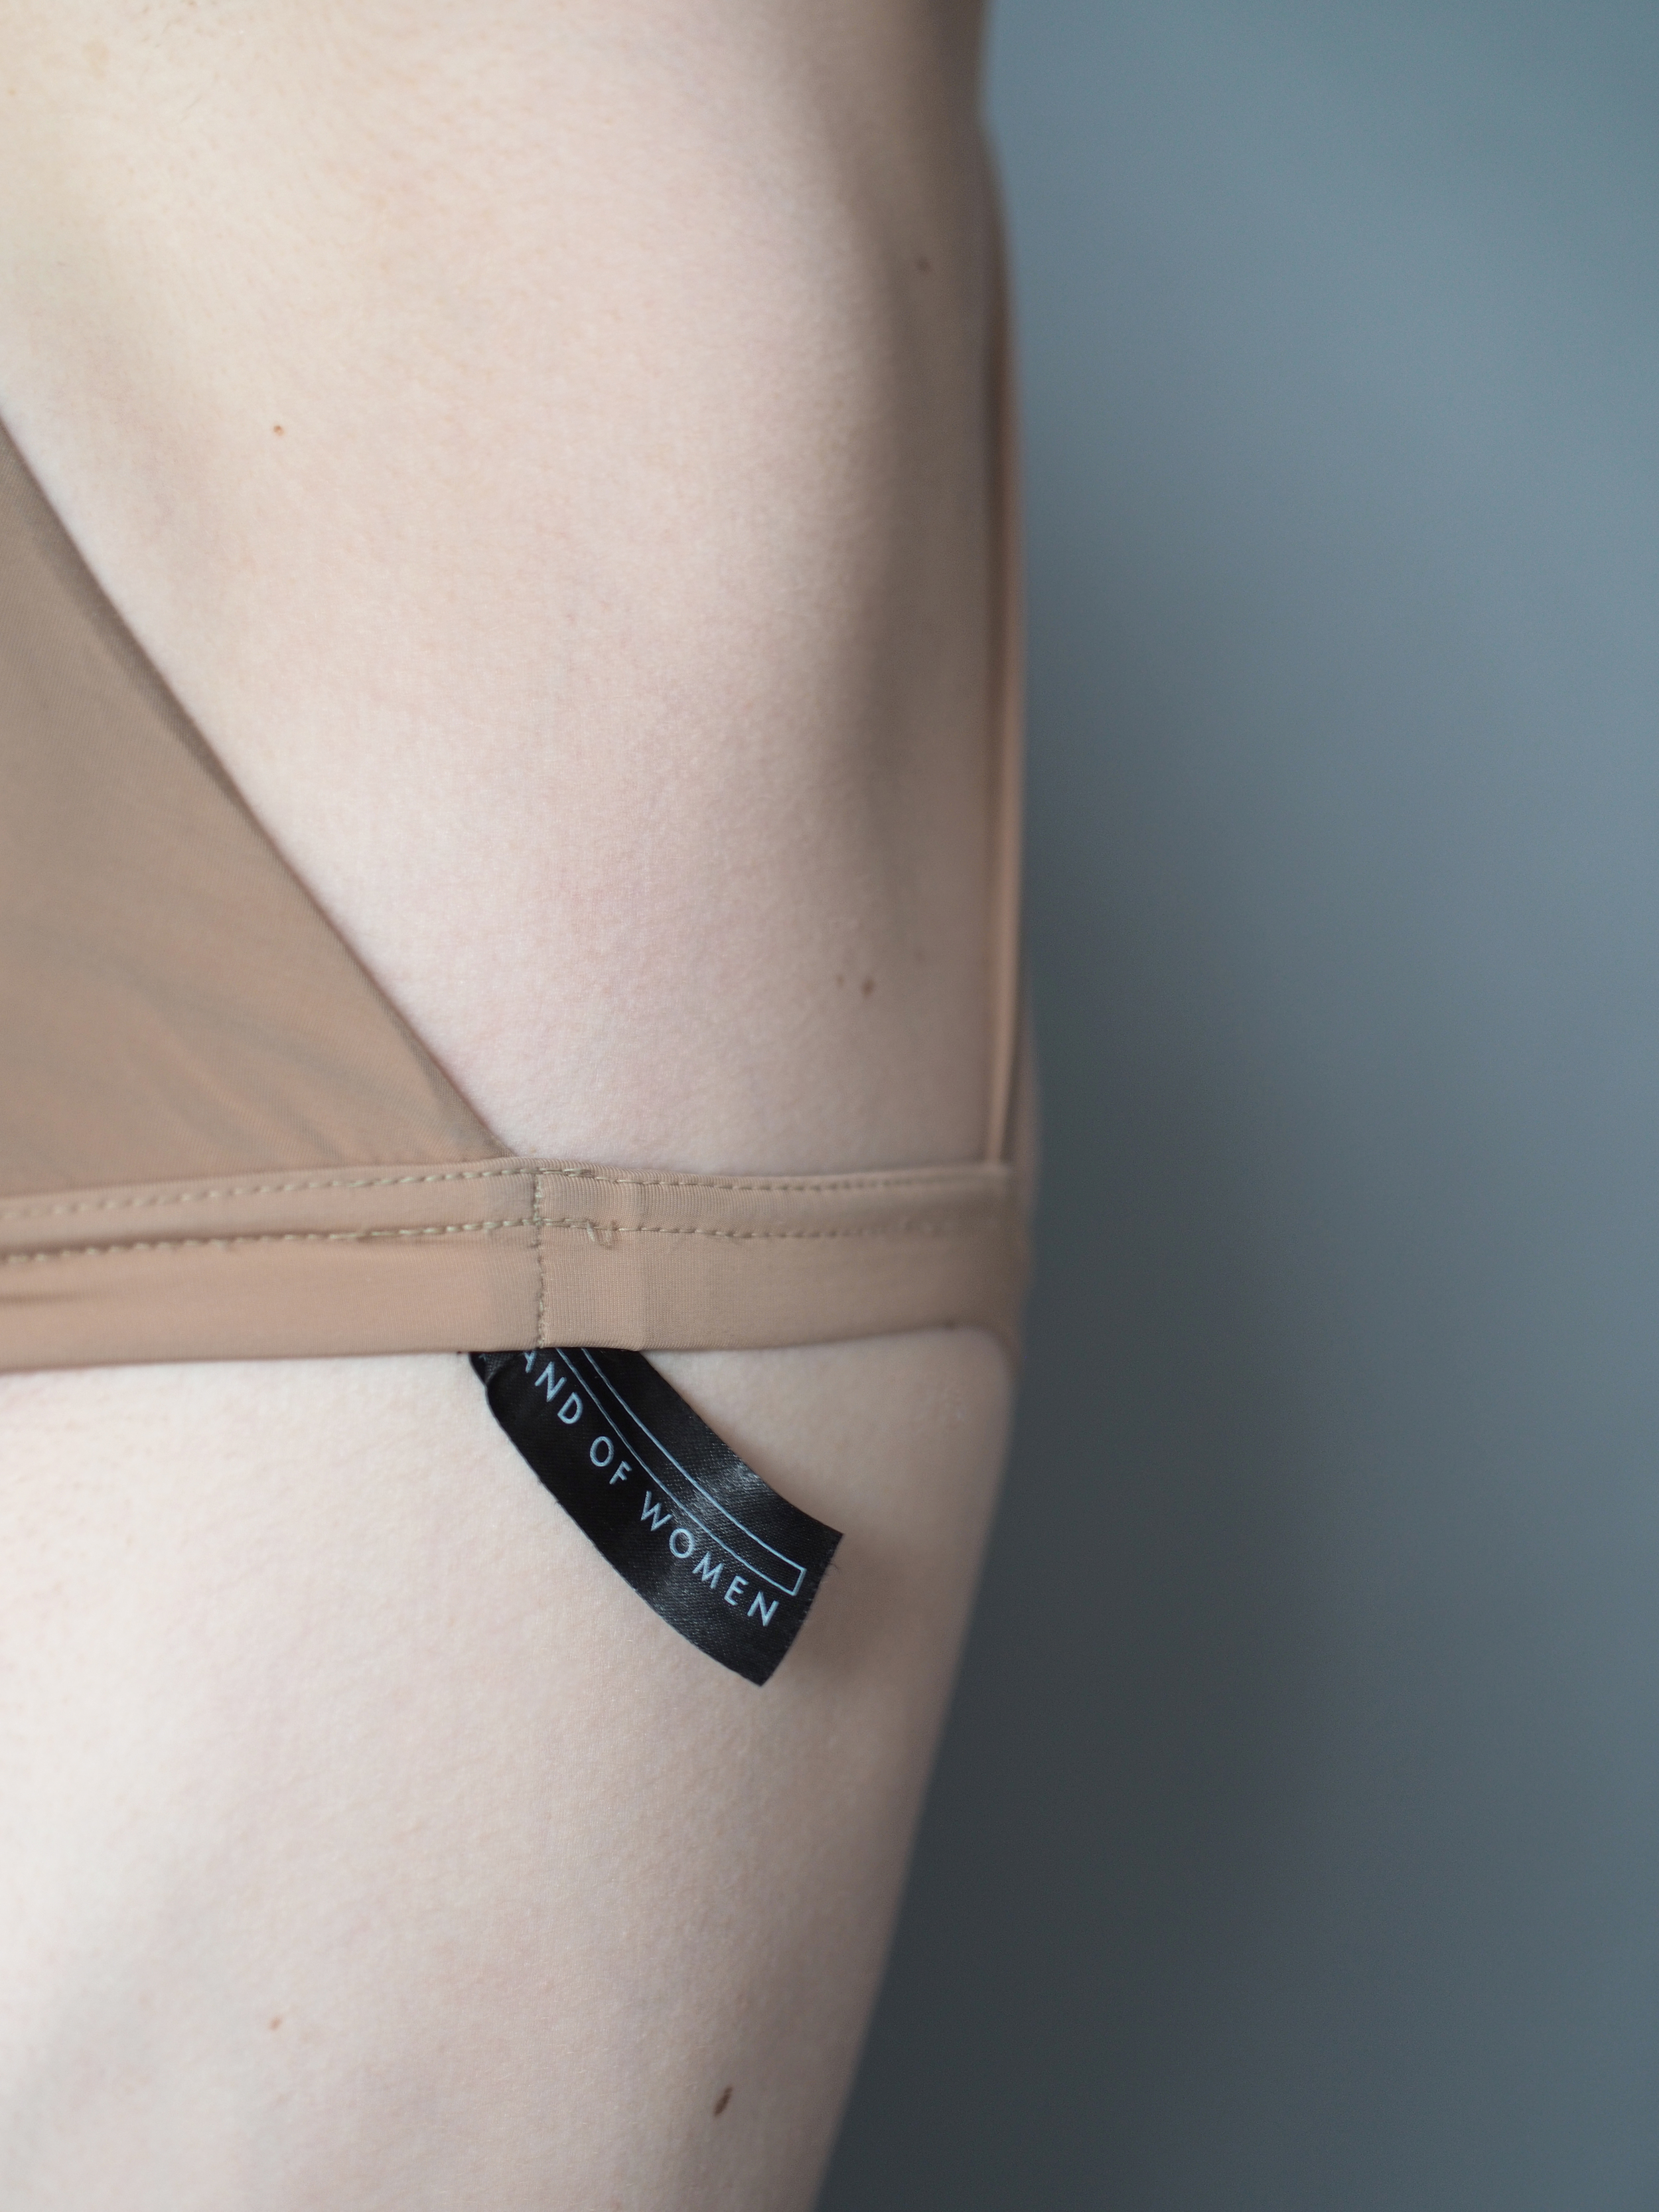 Land Of Women Lingerie for the Sport of Womanhood x Taylr Anne